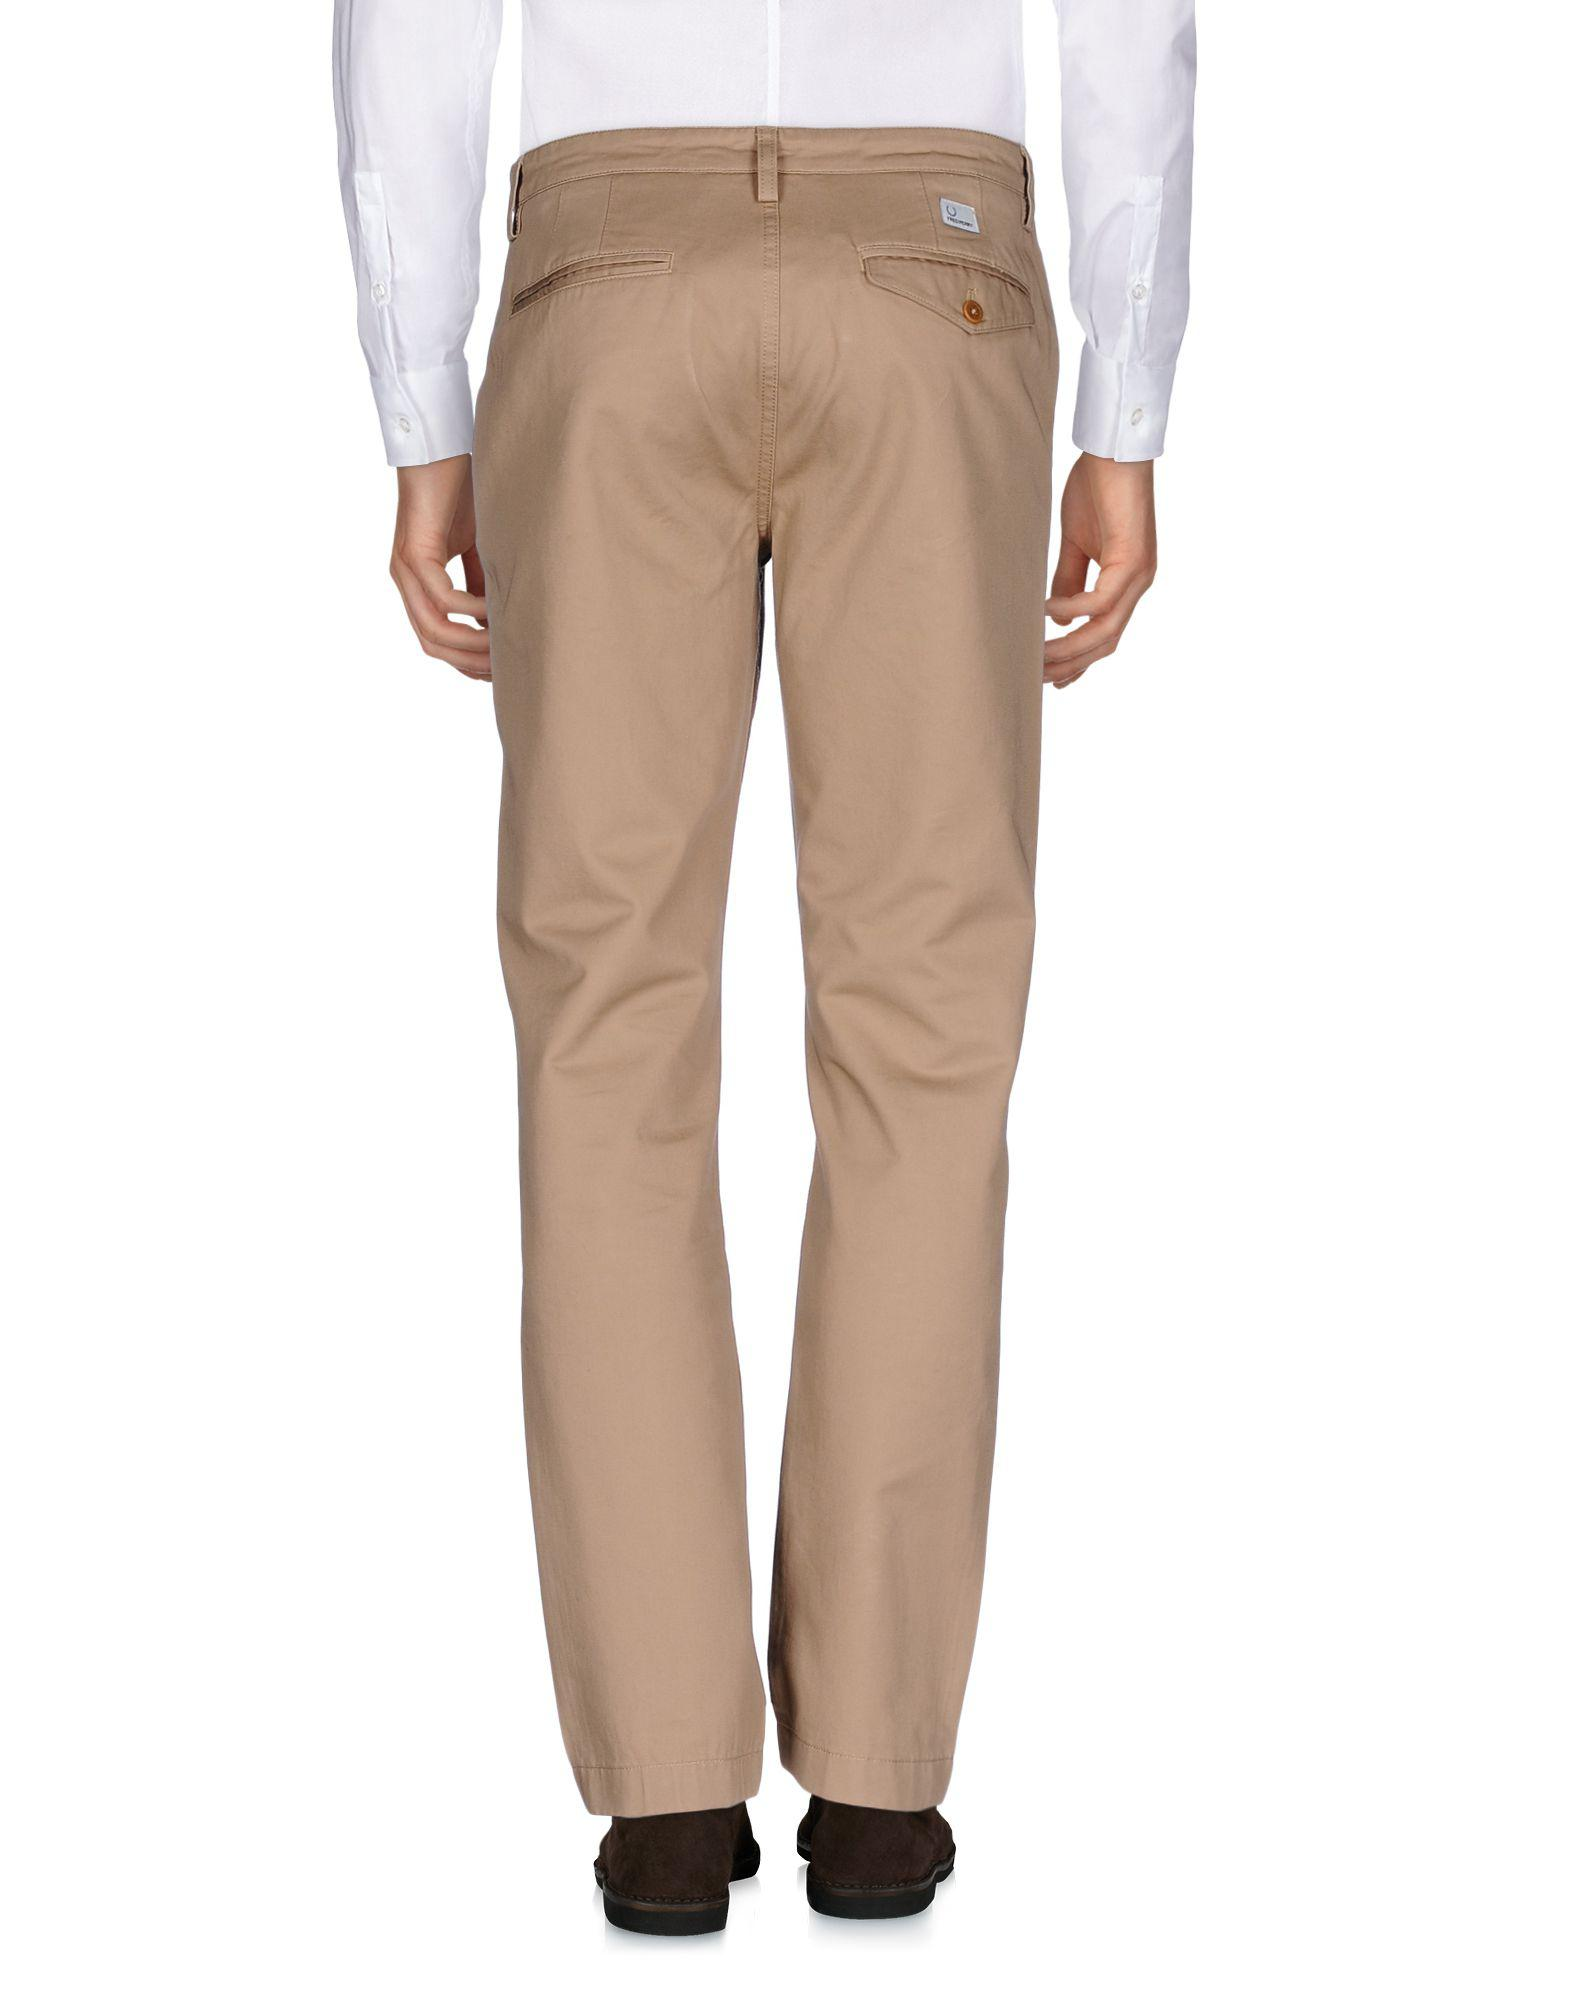 Fred Perry Cotton Casual Trouser in Beige (Natural) for Men